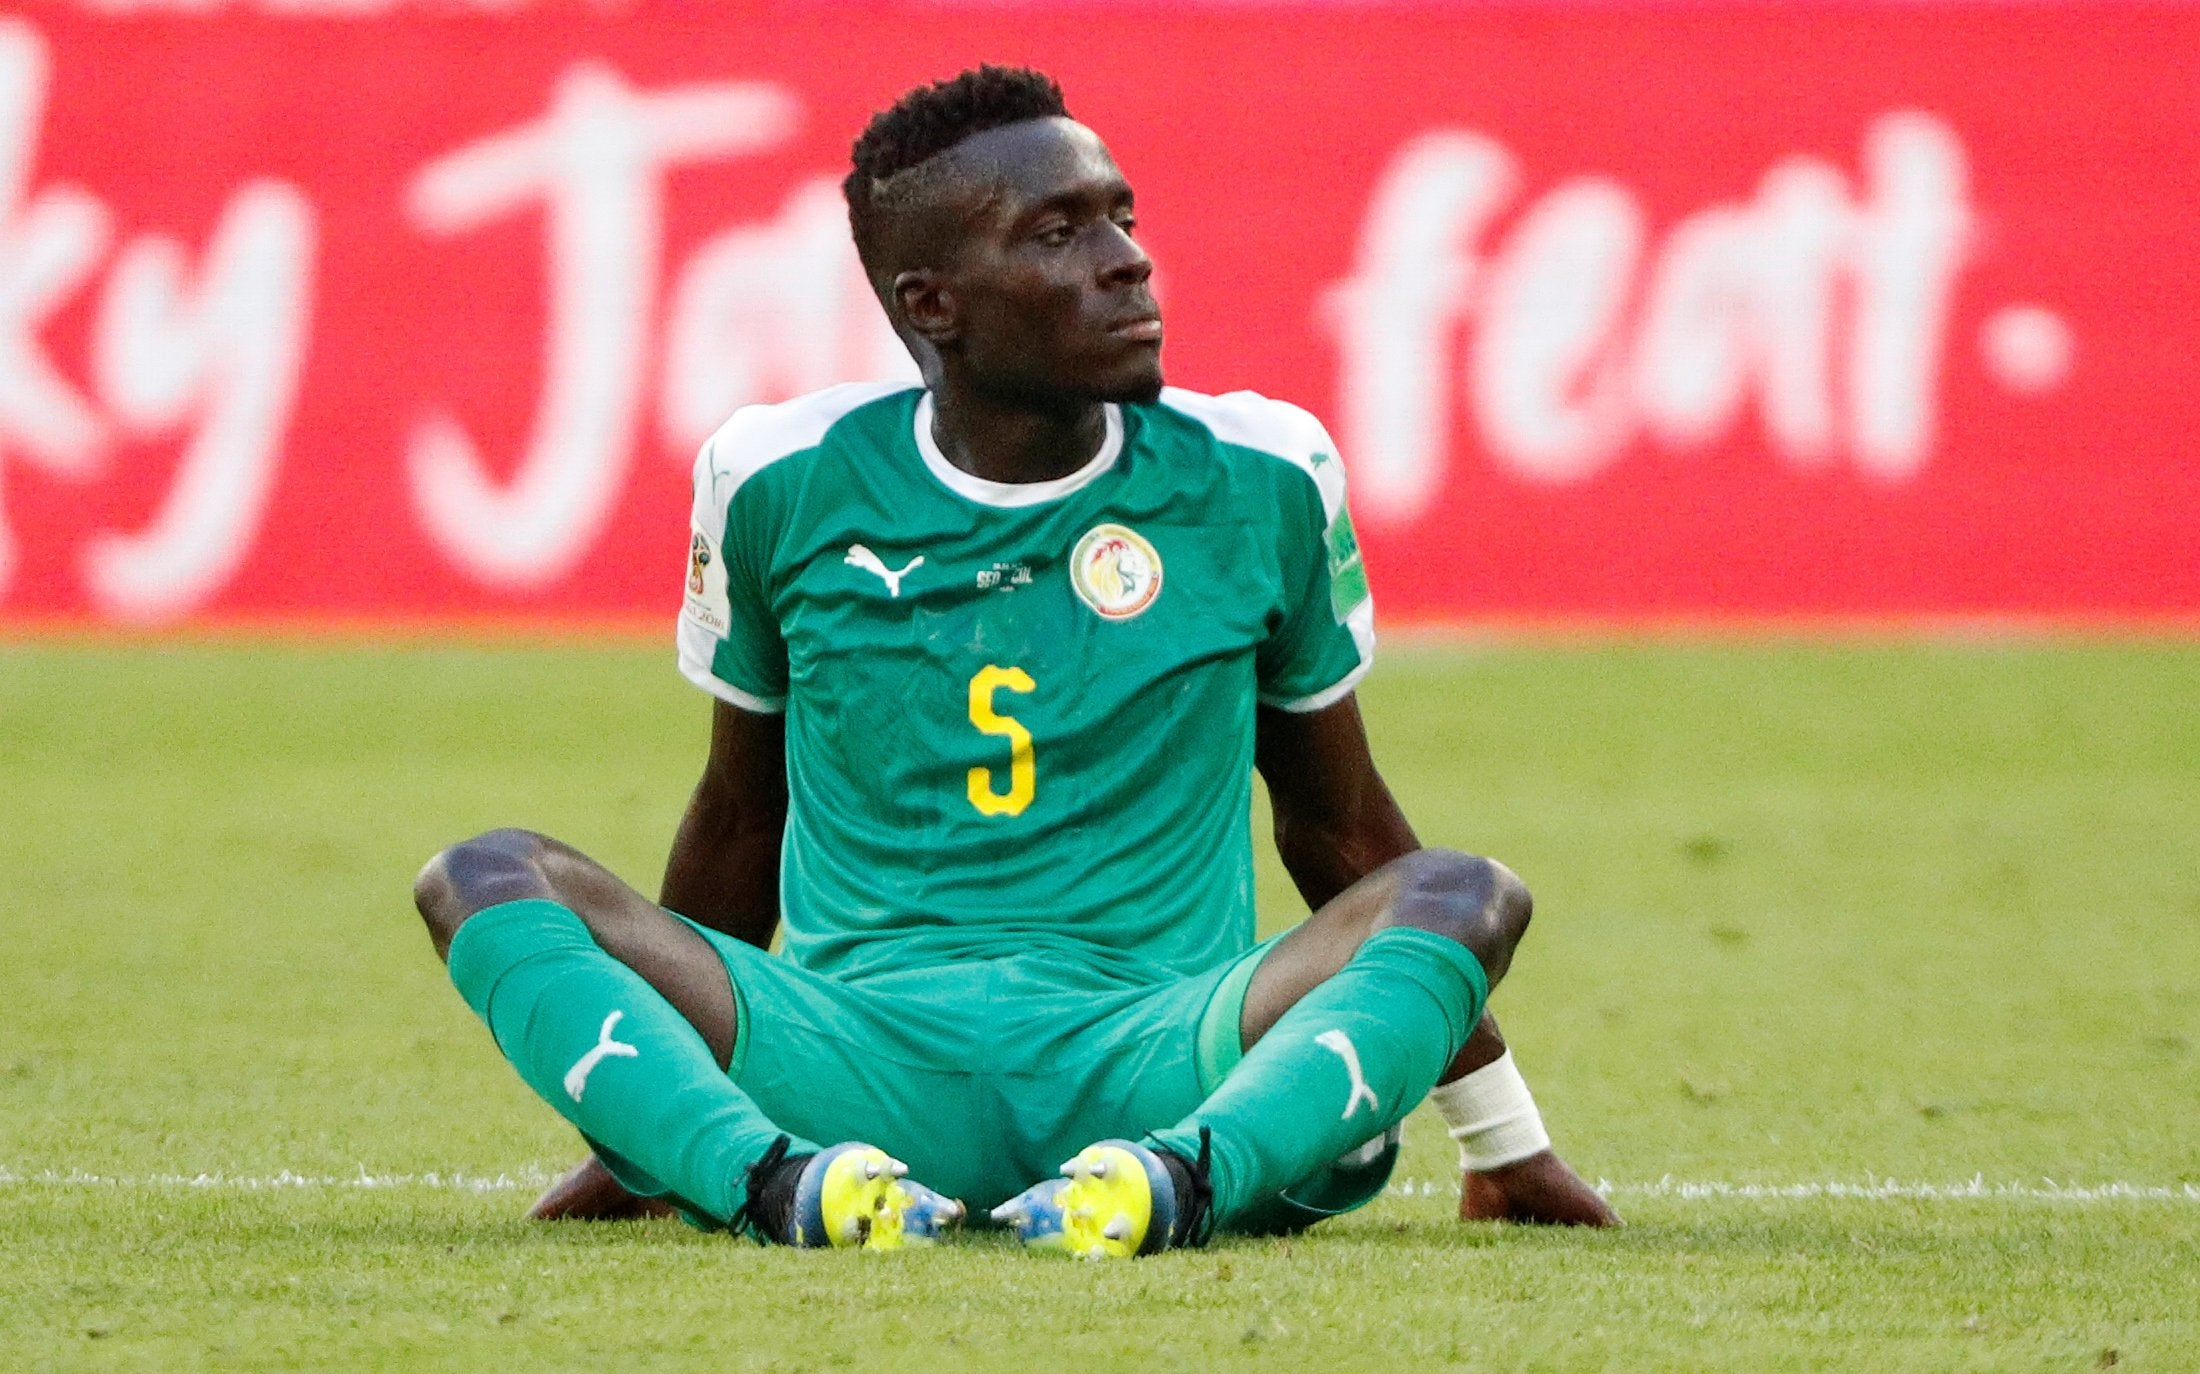 Senegal Vs Colombia Live Streaming Sportek Citaspobana S Diary Jefferson lerma put colombia ahead after seven minutes when he took advantage of poor marking to steal in at the far post and head home a deep cross from the right. citaspobana s diary